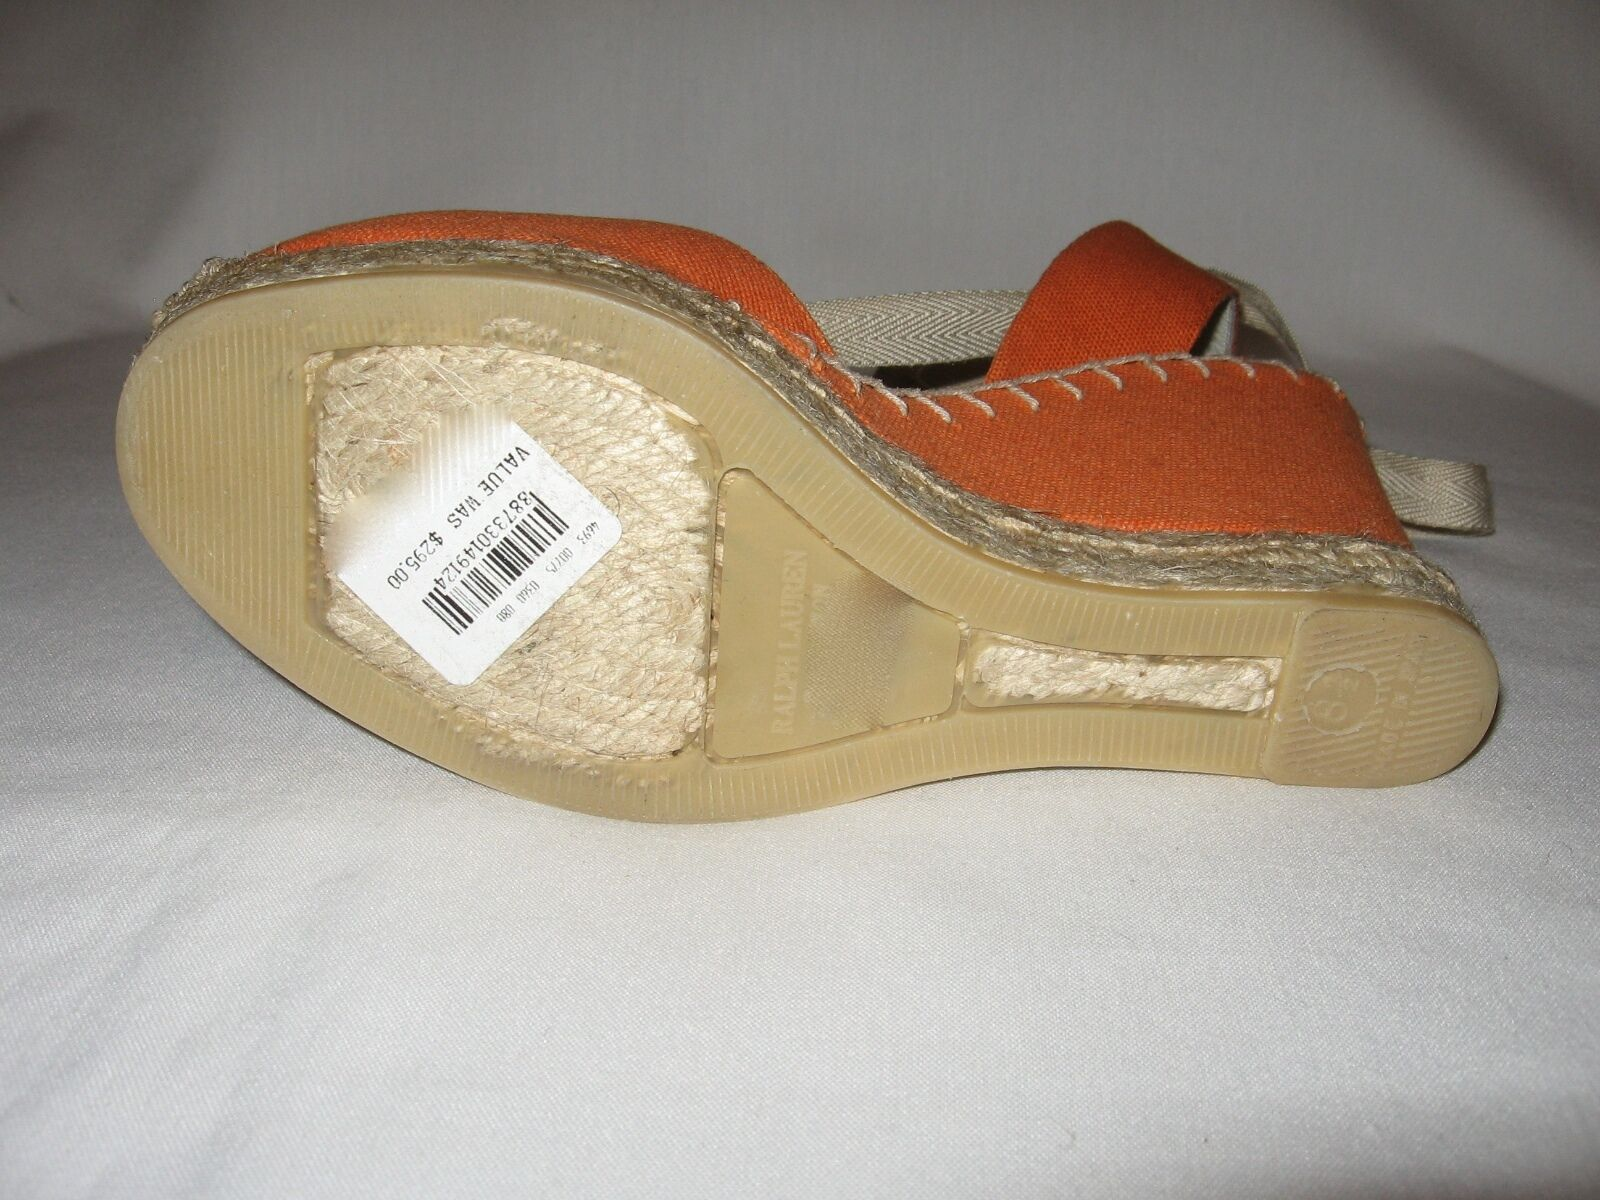 RALPH LAUREN BRAND Retail: NEW (NIB) CANVAS LACE UP SCANDALS Retail: BRAND 295+Tax da1d00